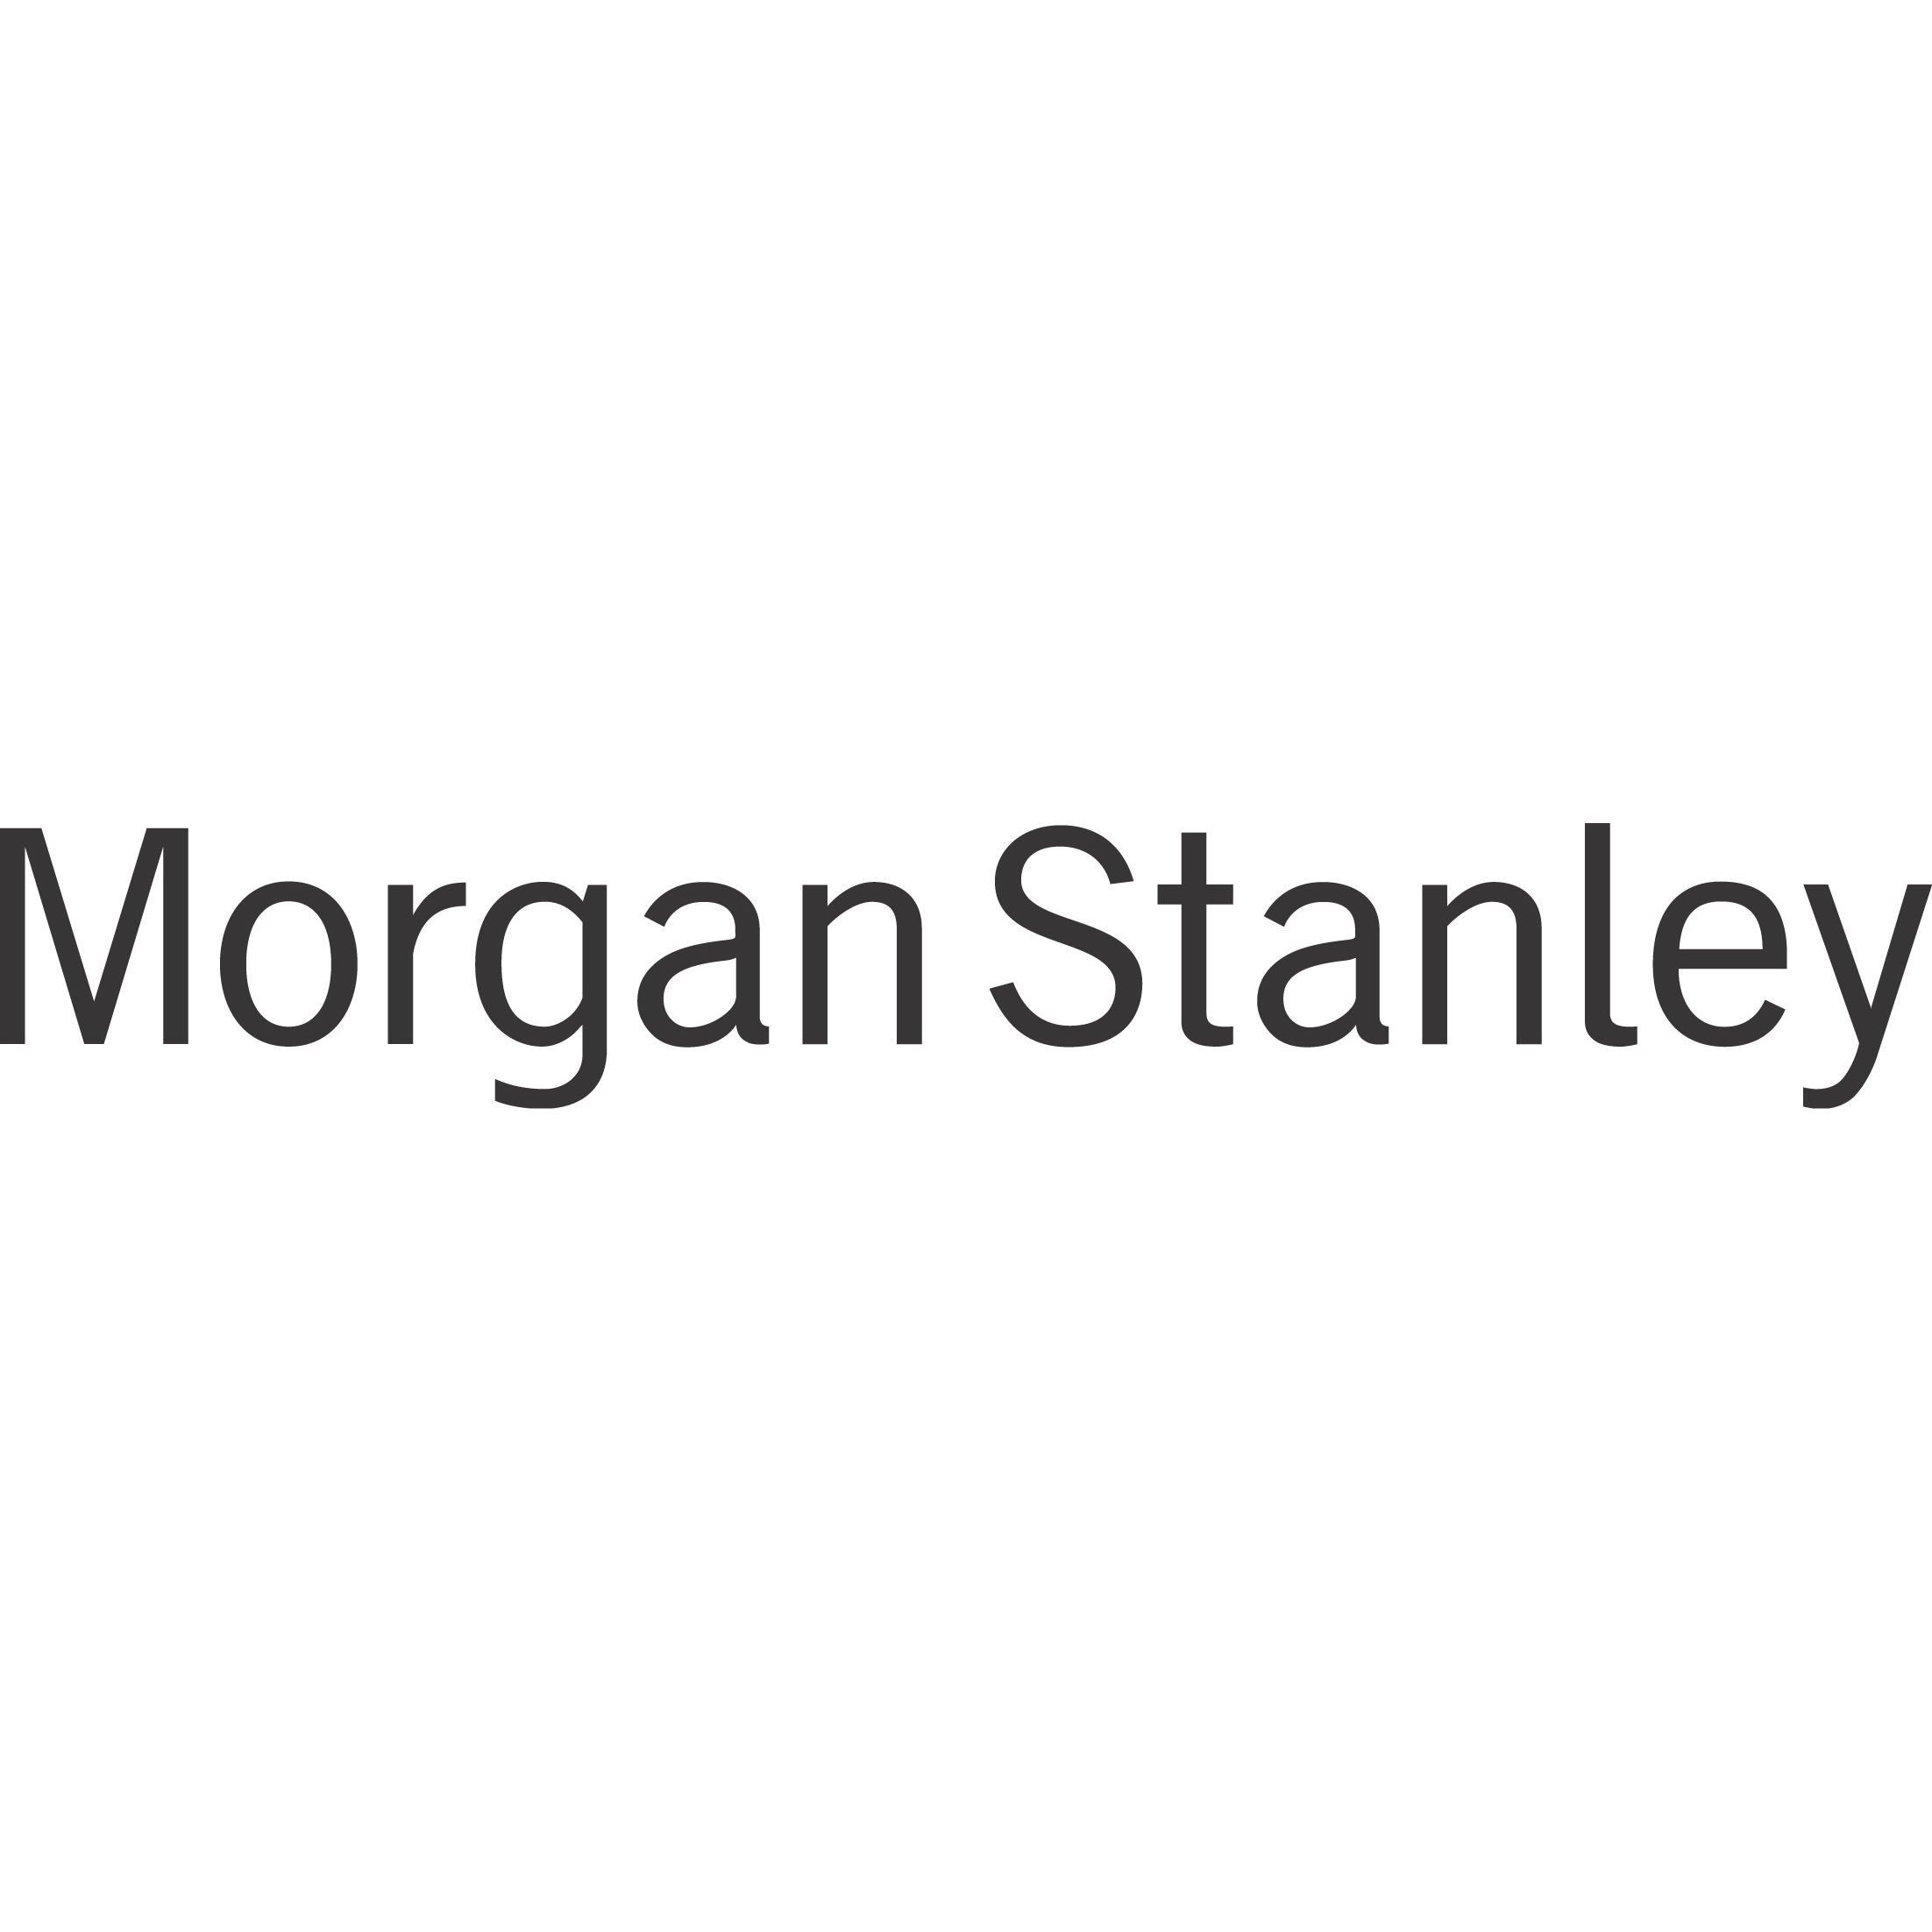 Sean Kelly - Morgan Stanley | Financial Advisor in Phoenix,Arizona